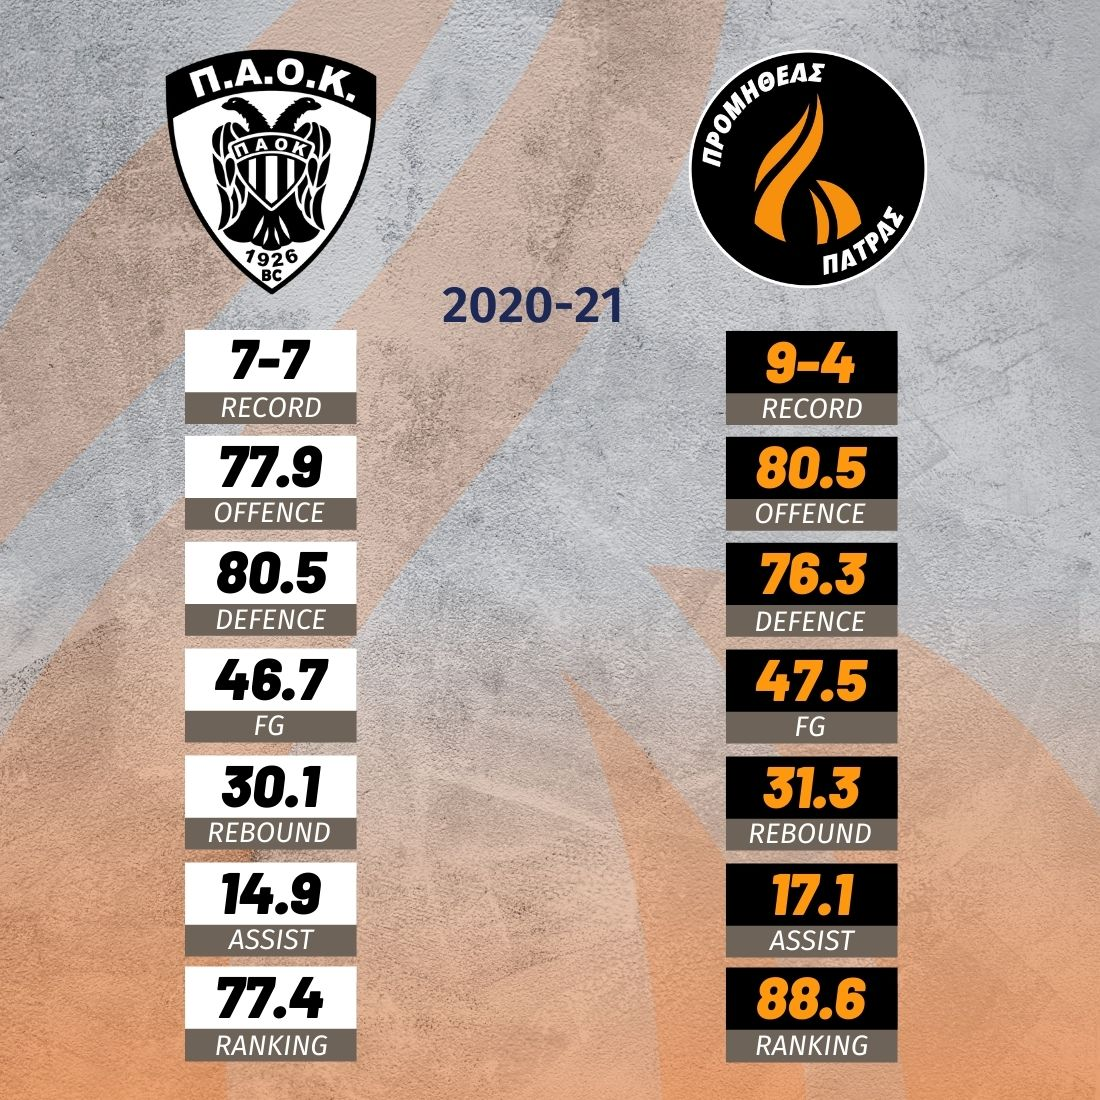 PAOK PROM 06032021 PRE GAME STATS COVER